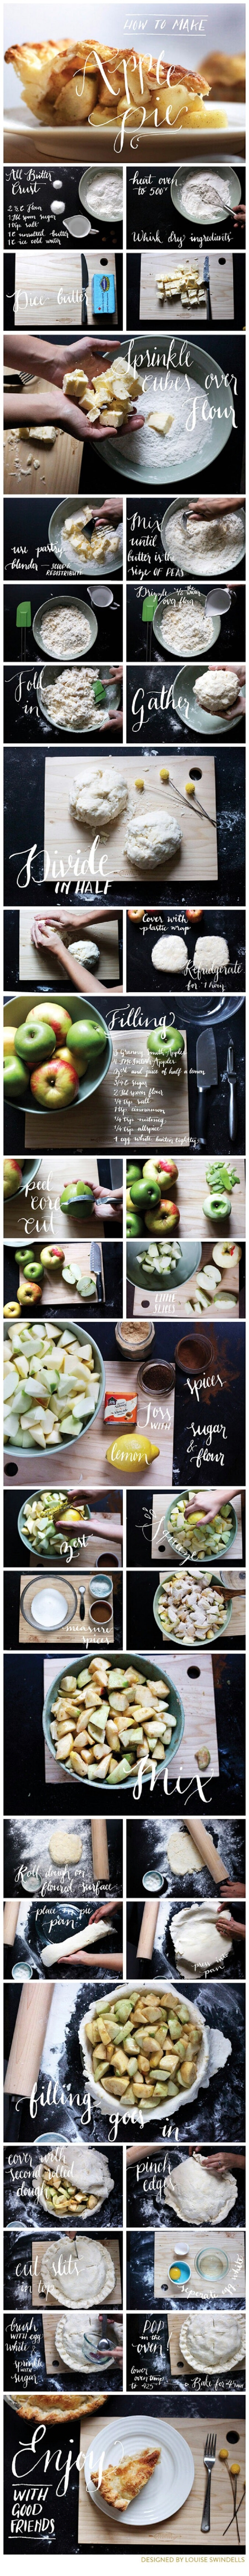 17. Learn how to make an apple pie.